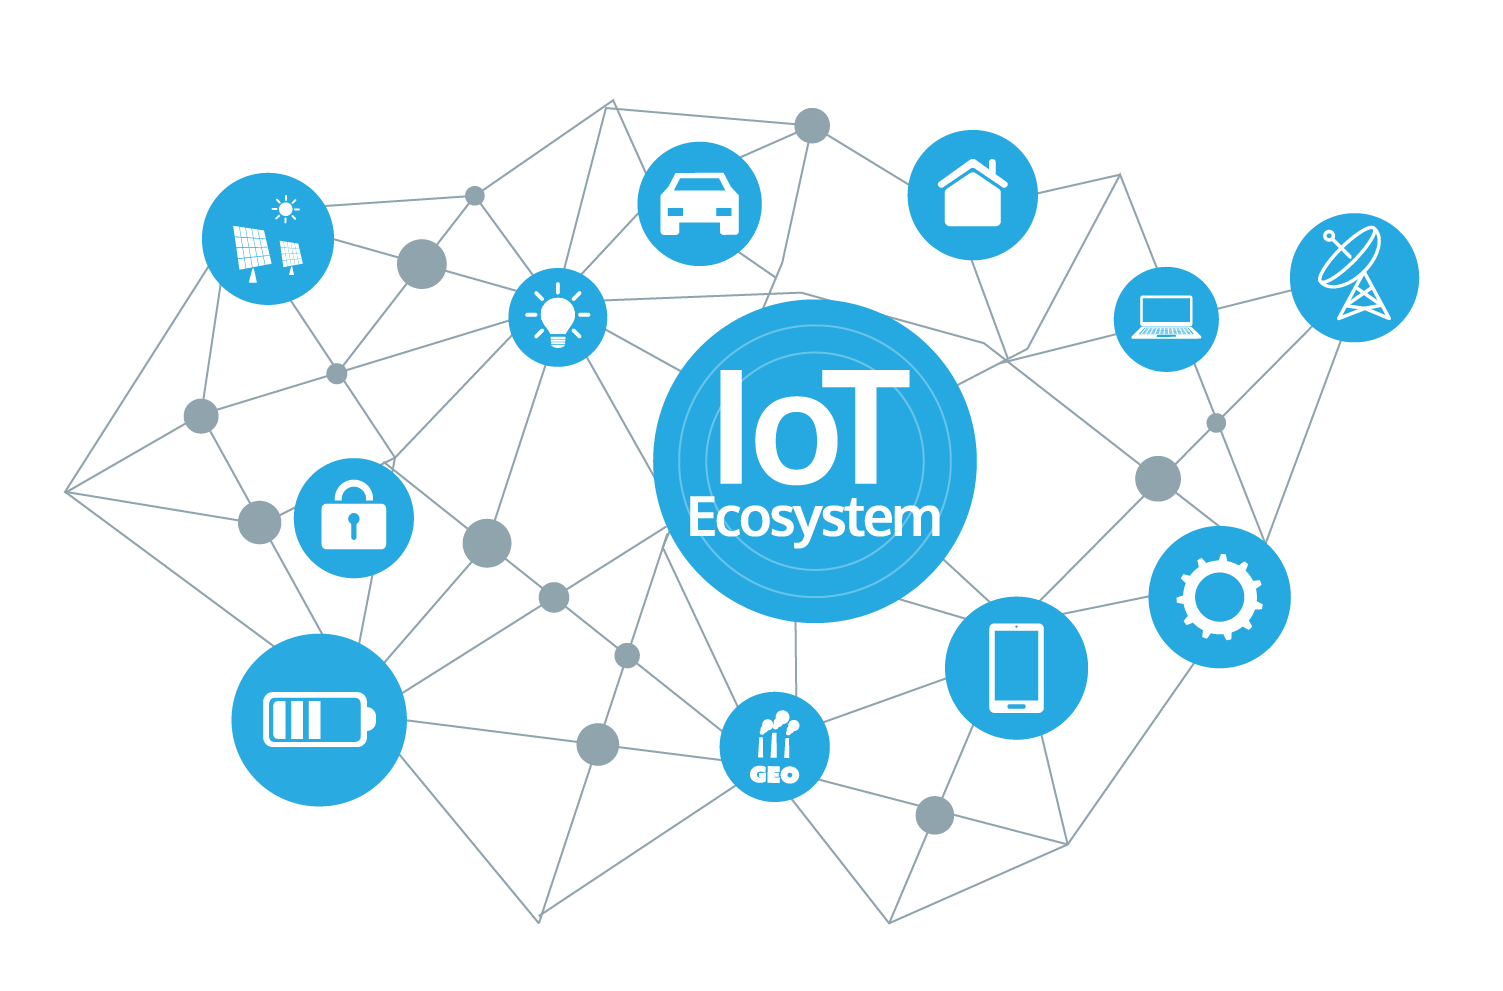 Why should you do mini/ final year projects on IoT?